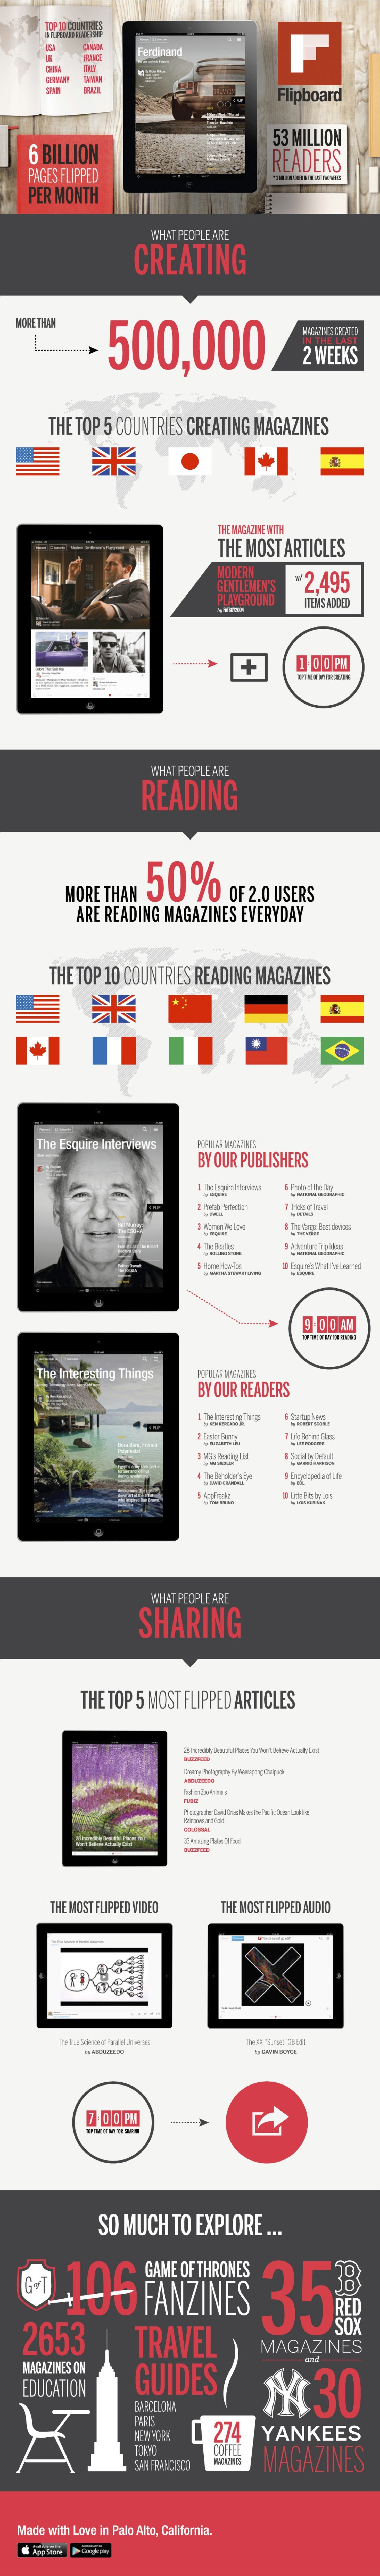 The State of Flipboard and Rise of Mobile Curation [INFOGRAPHIC]